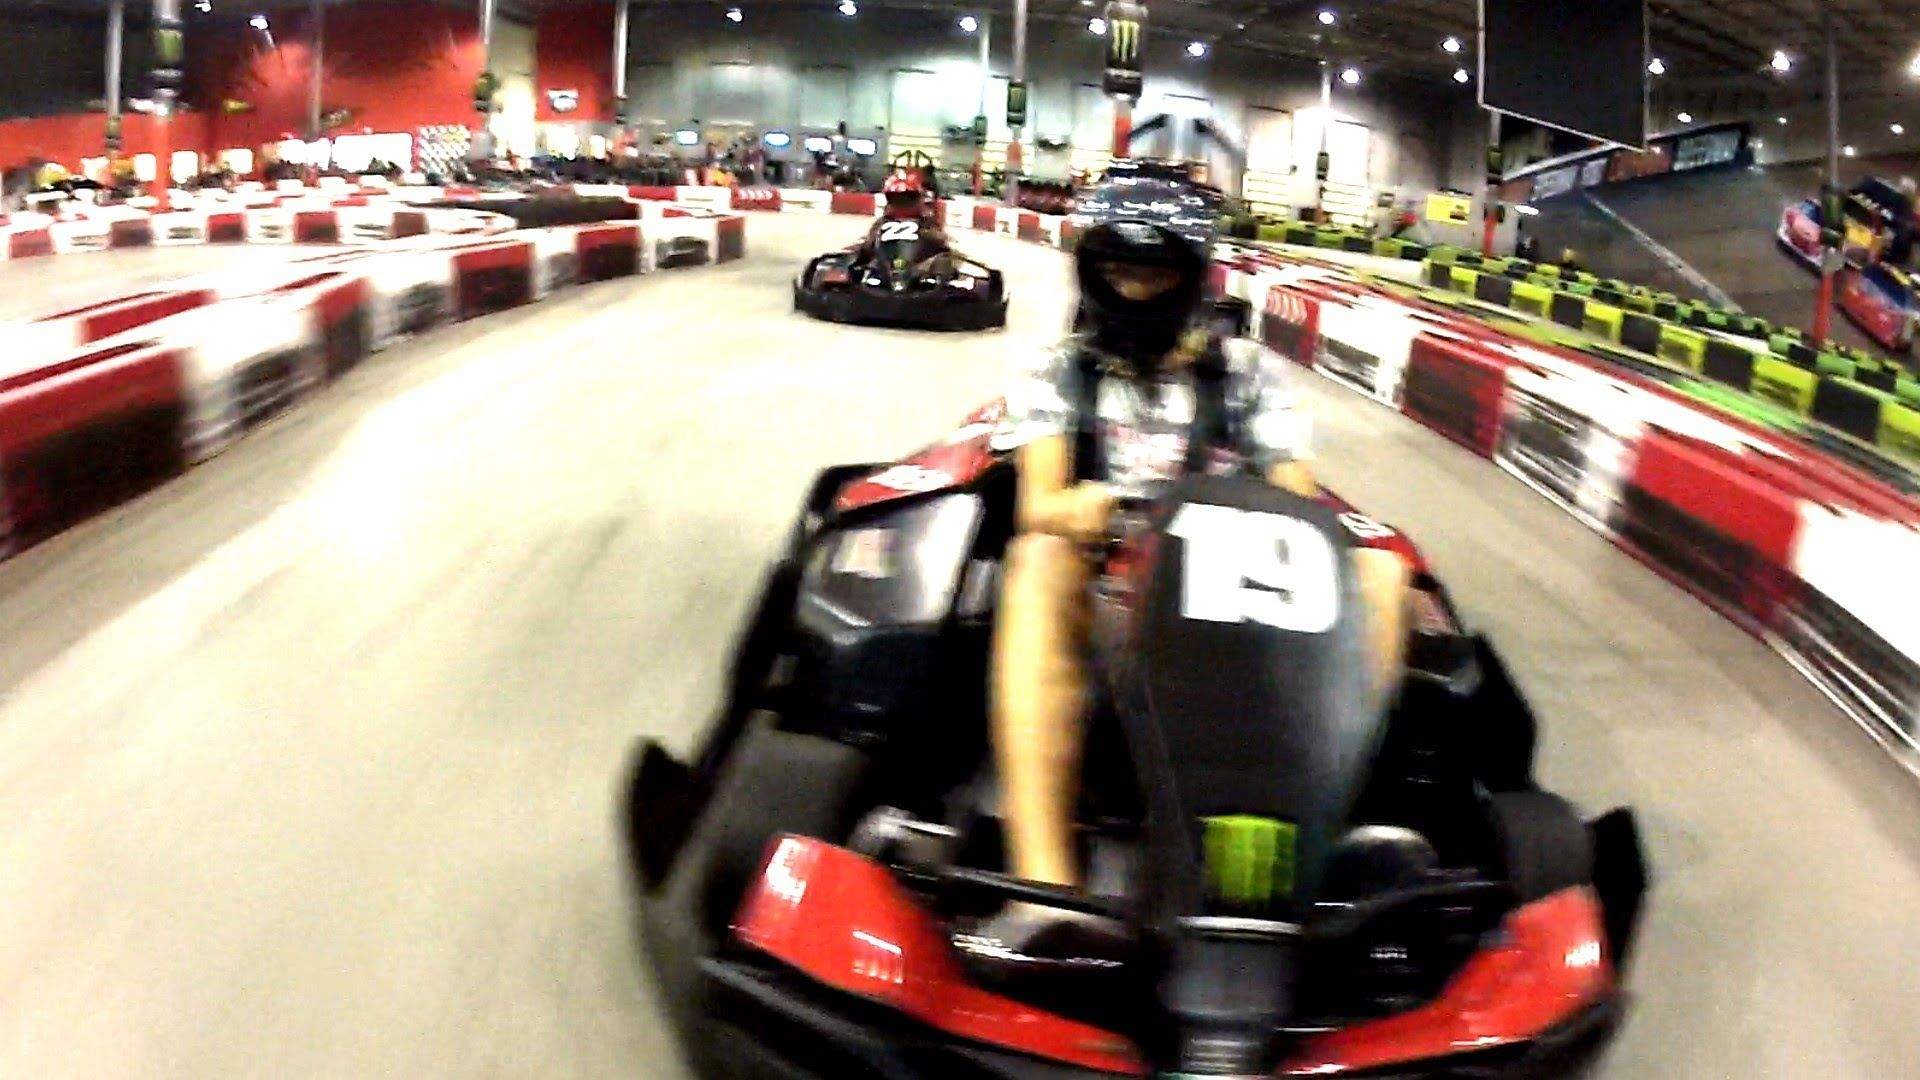 Drift Racing 50mph+ Electric Go Karts | Videos | Pinterest | Kart racing